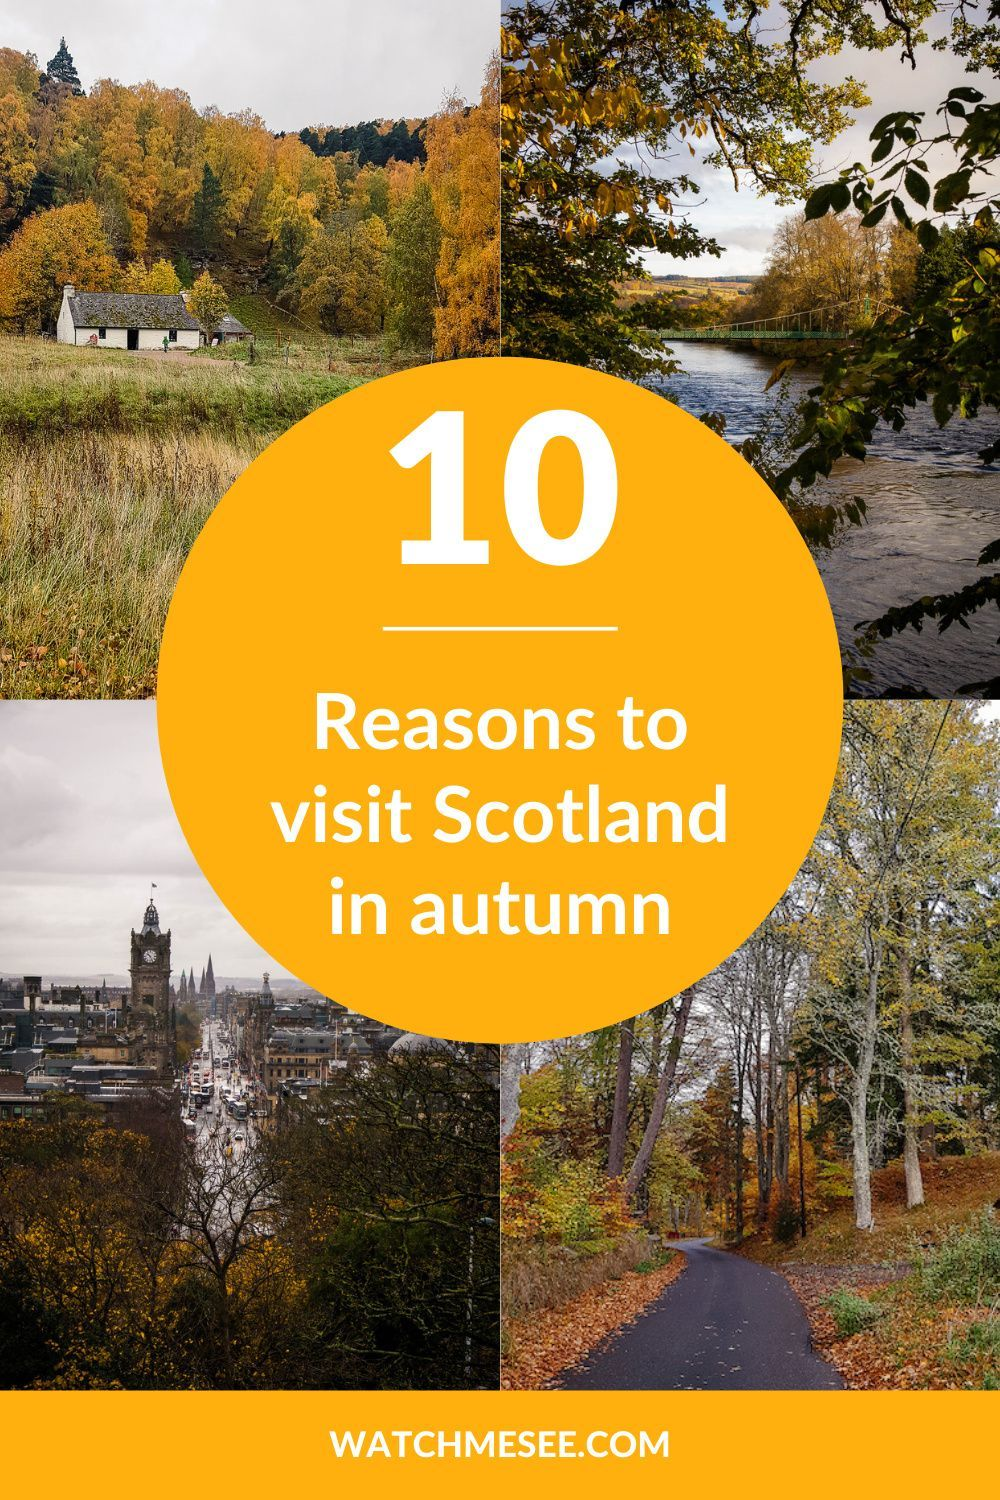 10 Reasons to visit Scotland in Autumn